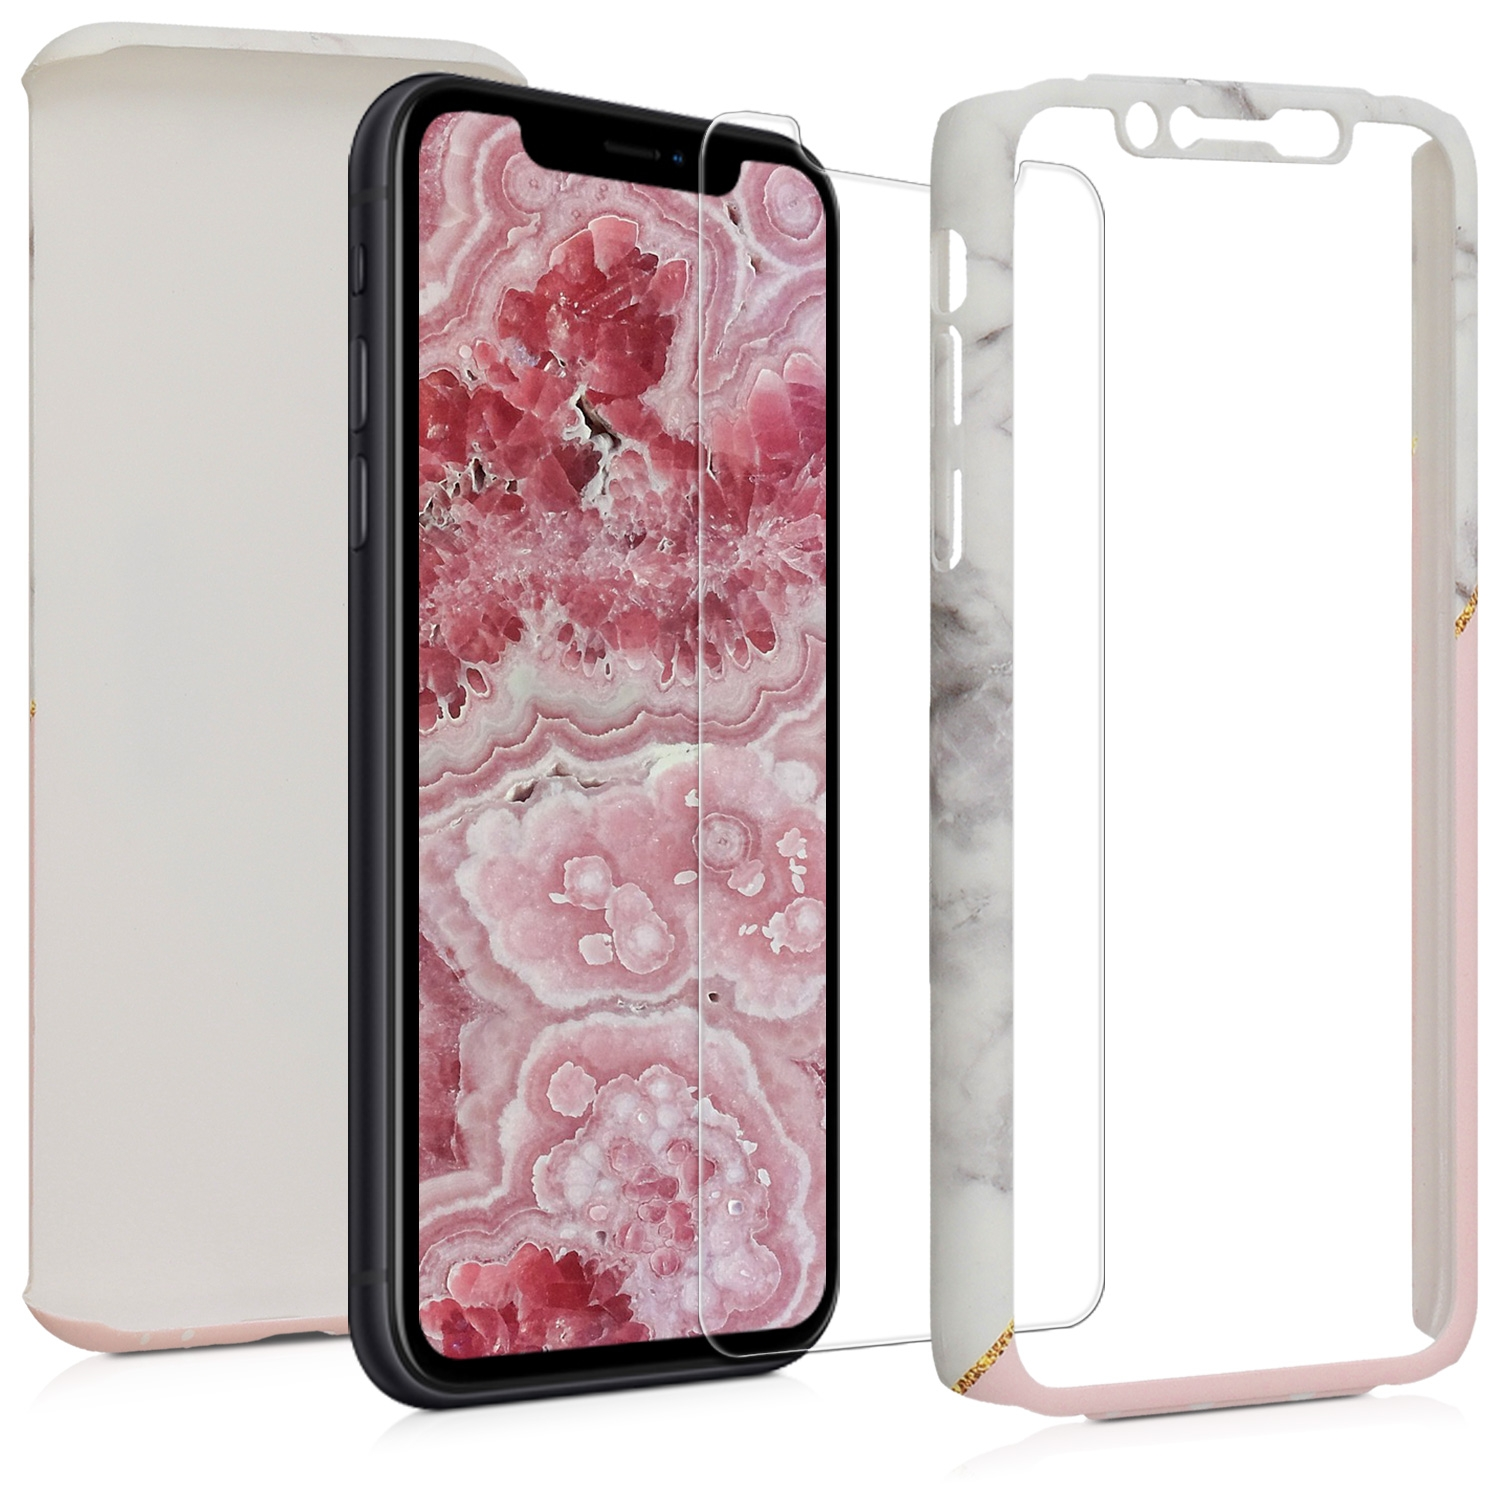 KW Θήκη Full Body Apple iPhone XR - Screen Protection - White / Dusty Pink / Gold (48202.01)